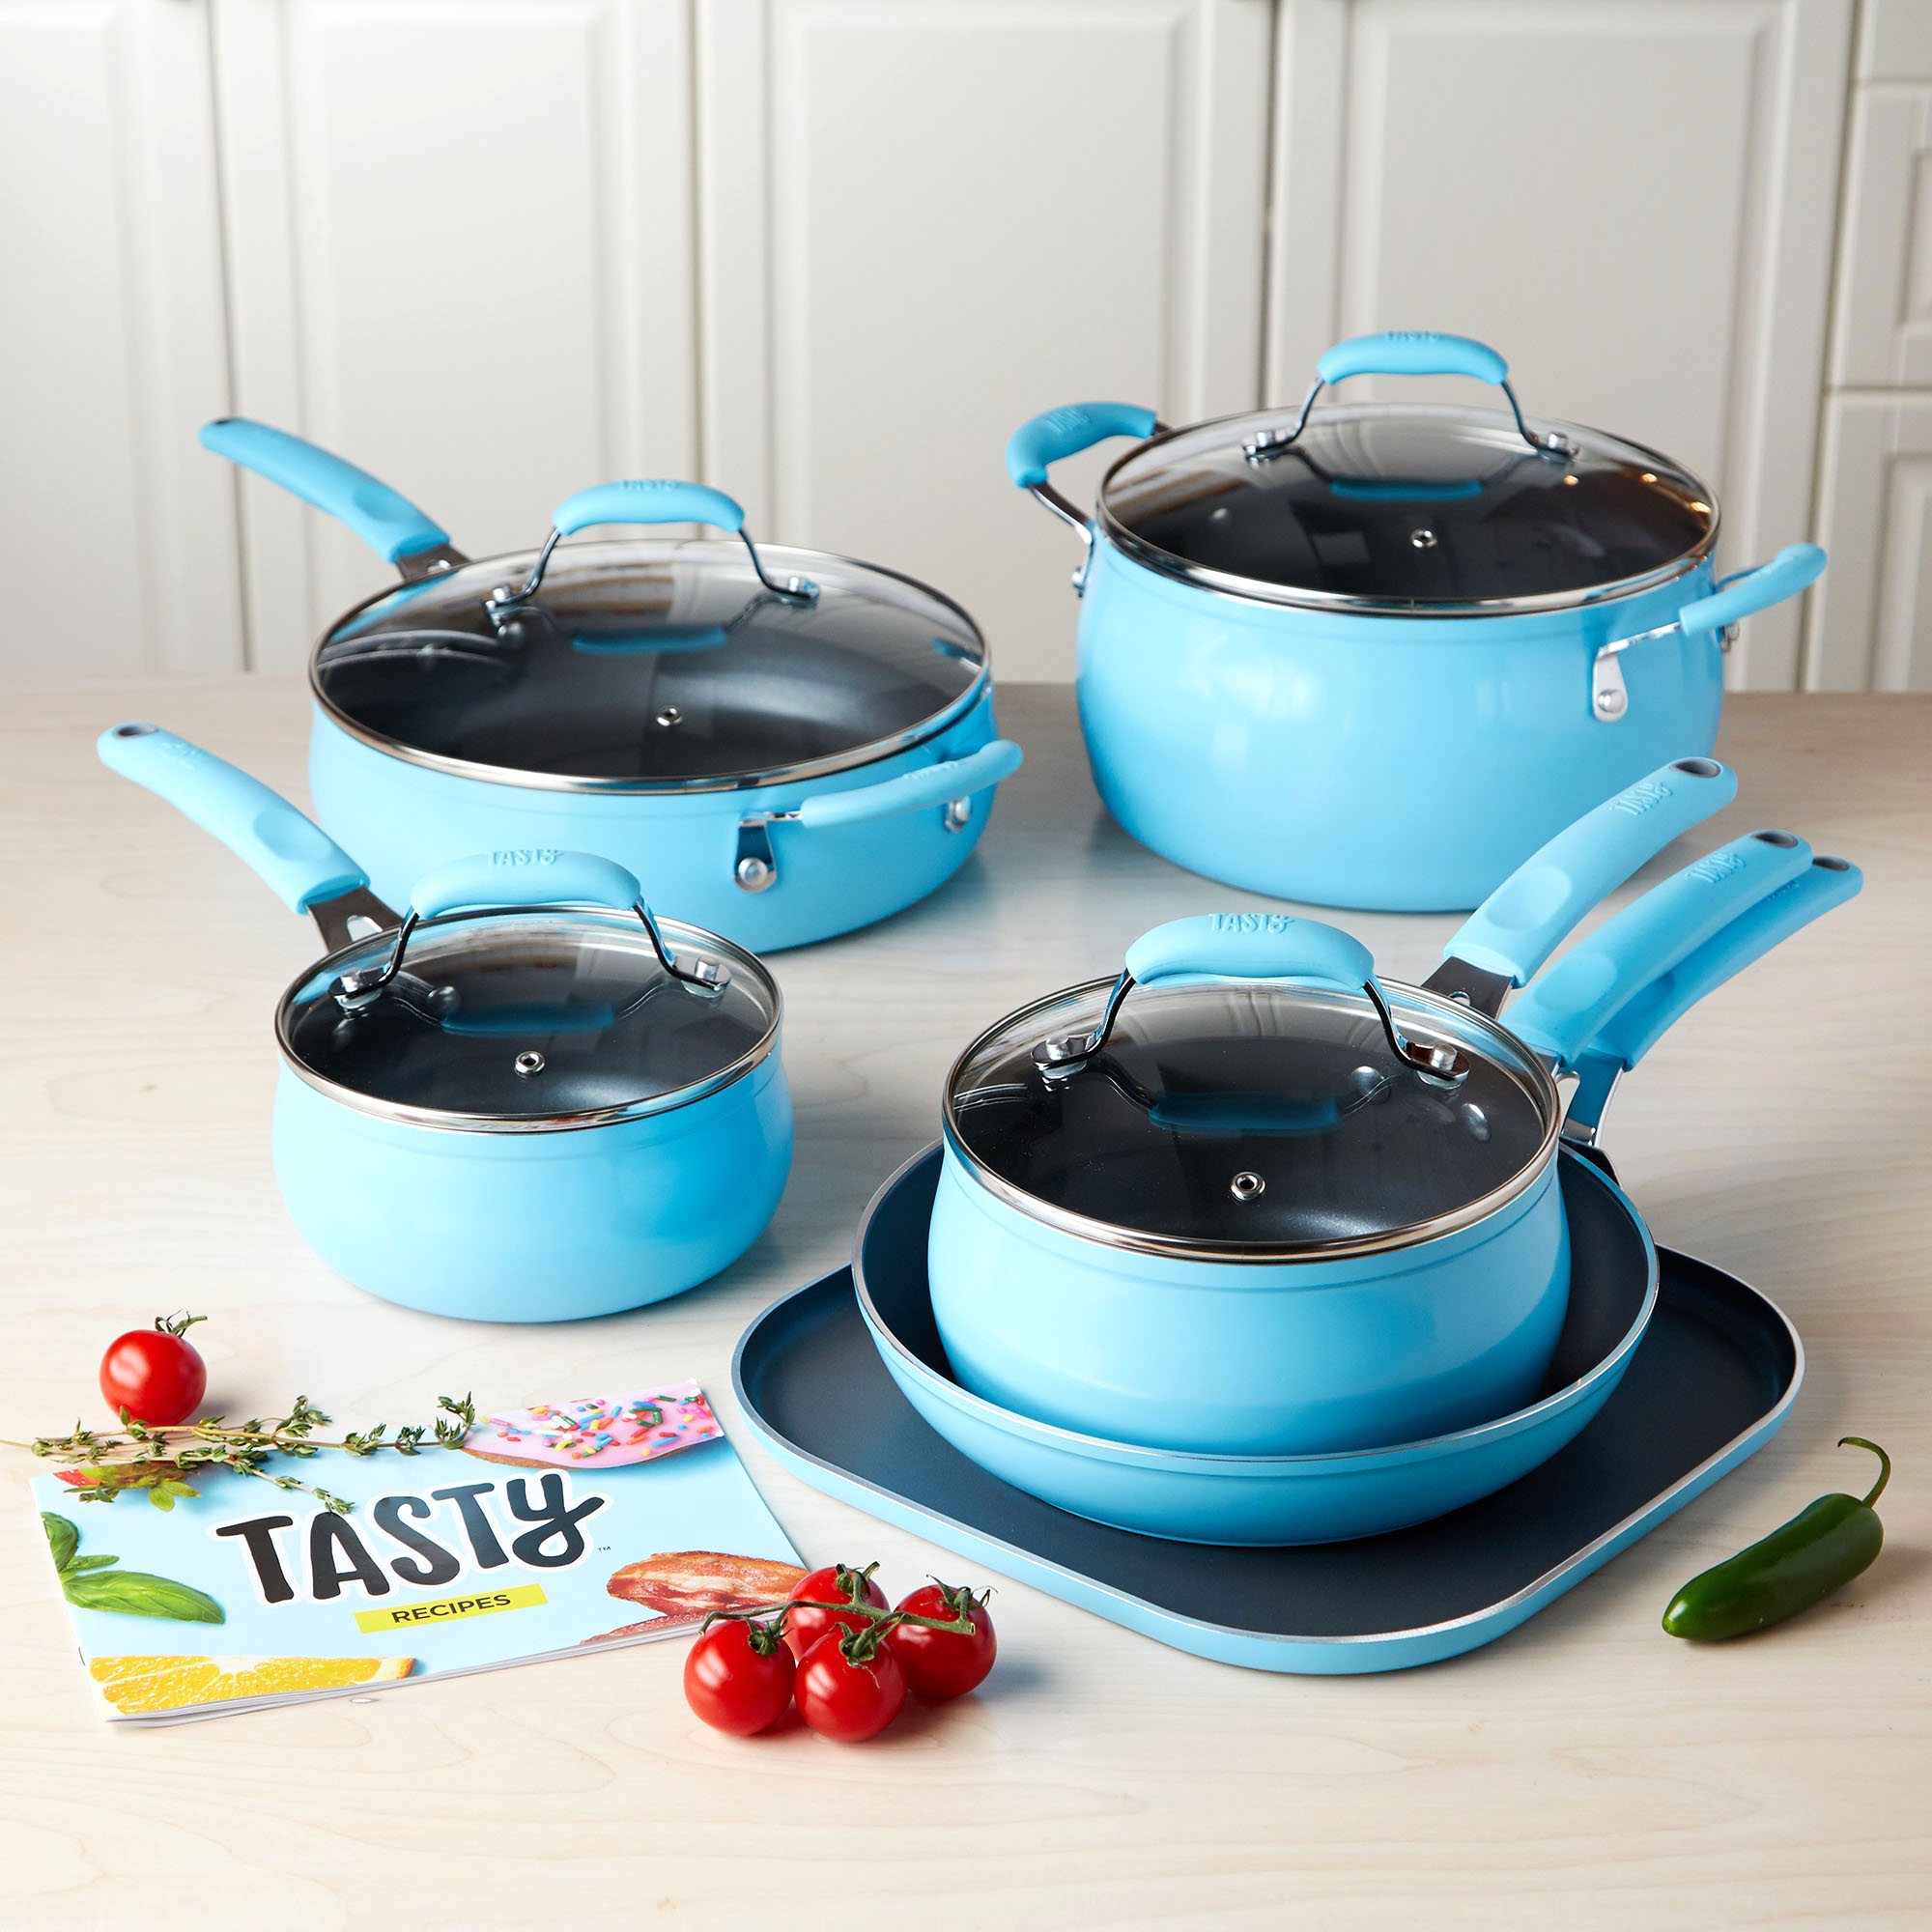 Tasty Non-Stick Diamond Reinforced Blue Cookware Set, 11 Piece